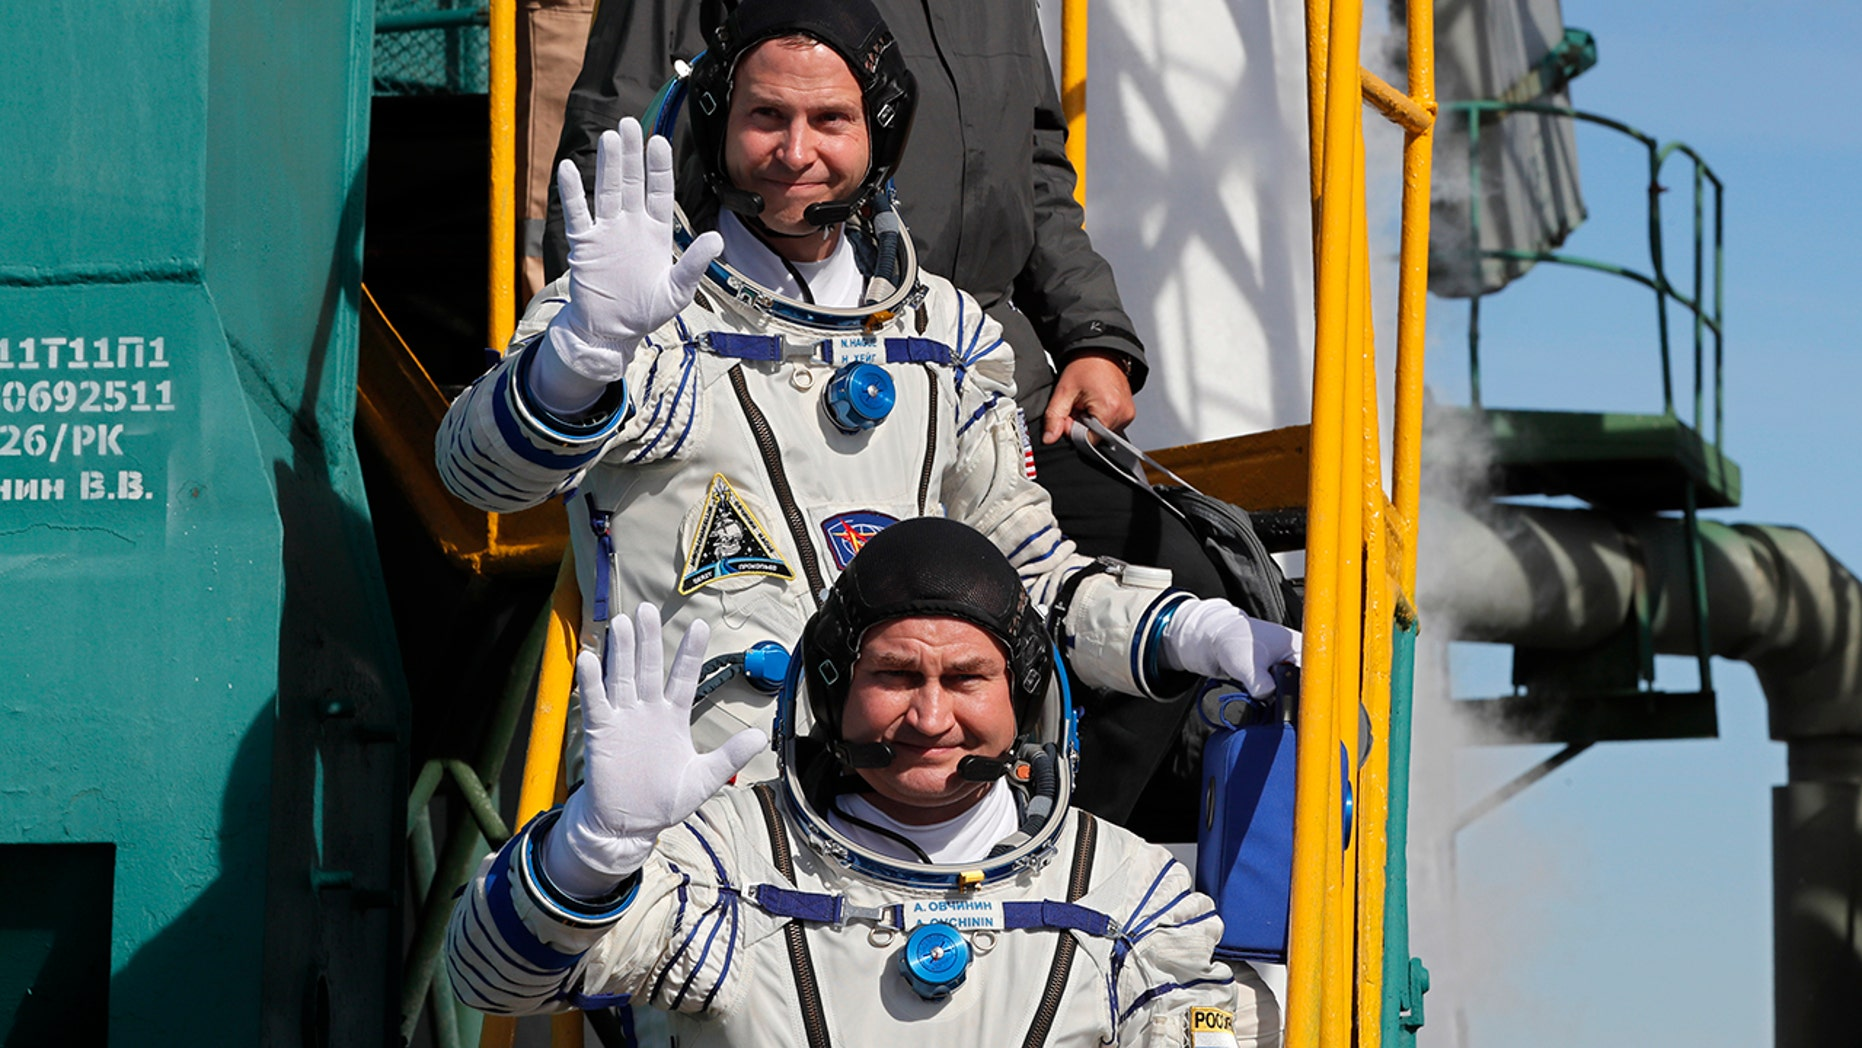 Two astronauts in good condition after emergency landing